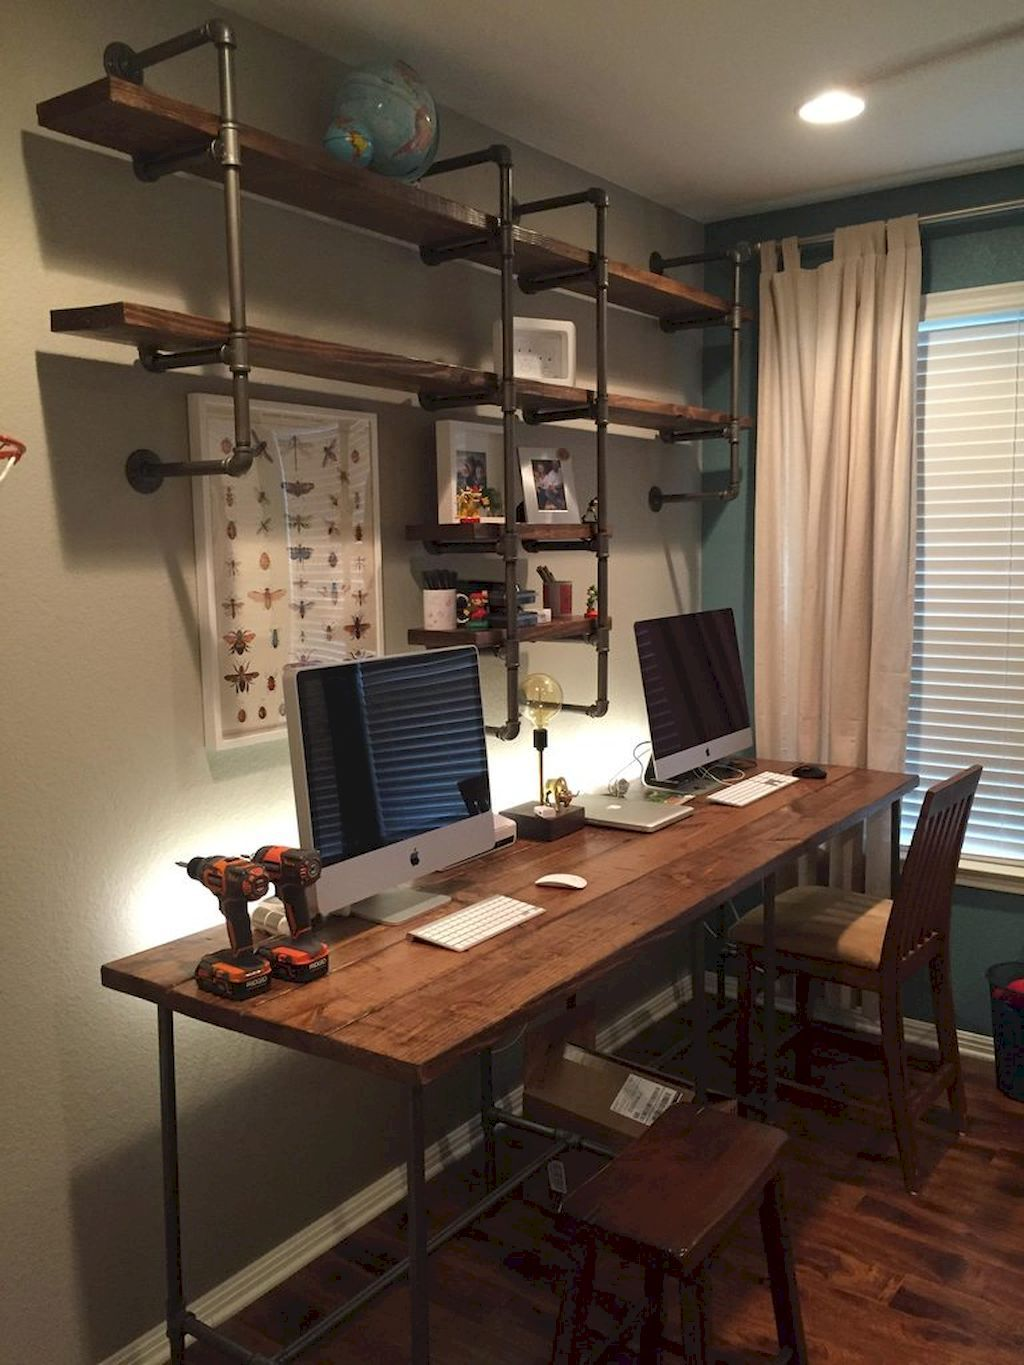 Awesome 101+ Incredibly Organized Creative Workspaces Decor Ideas https://besideroom.com/2017/07/28/101-incredibly-organized-creative-workspaces-decor-ideas/